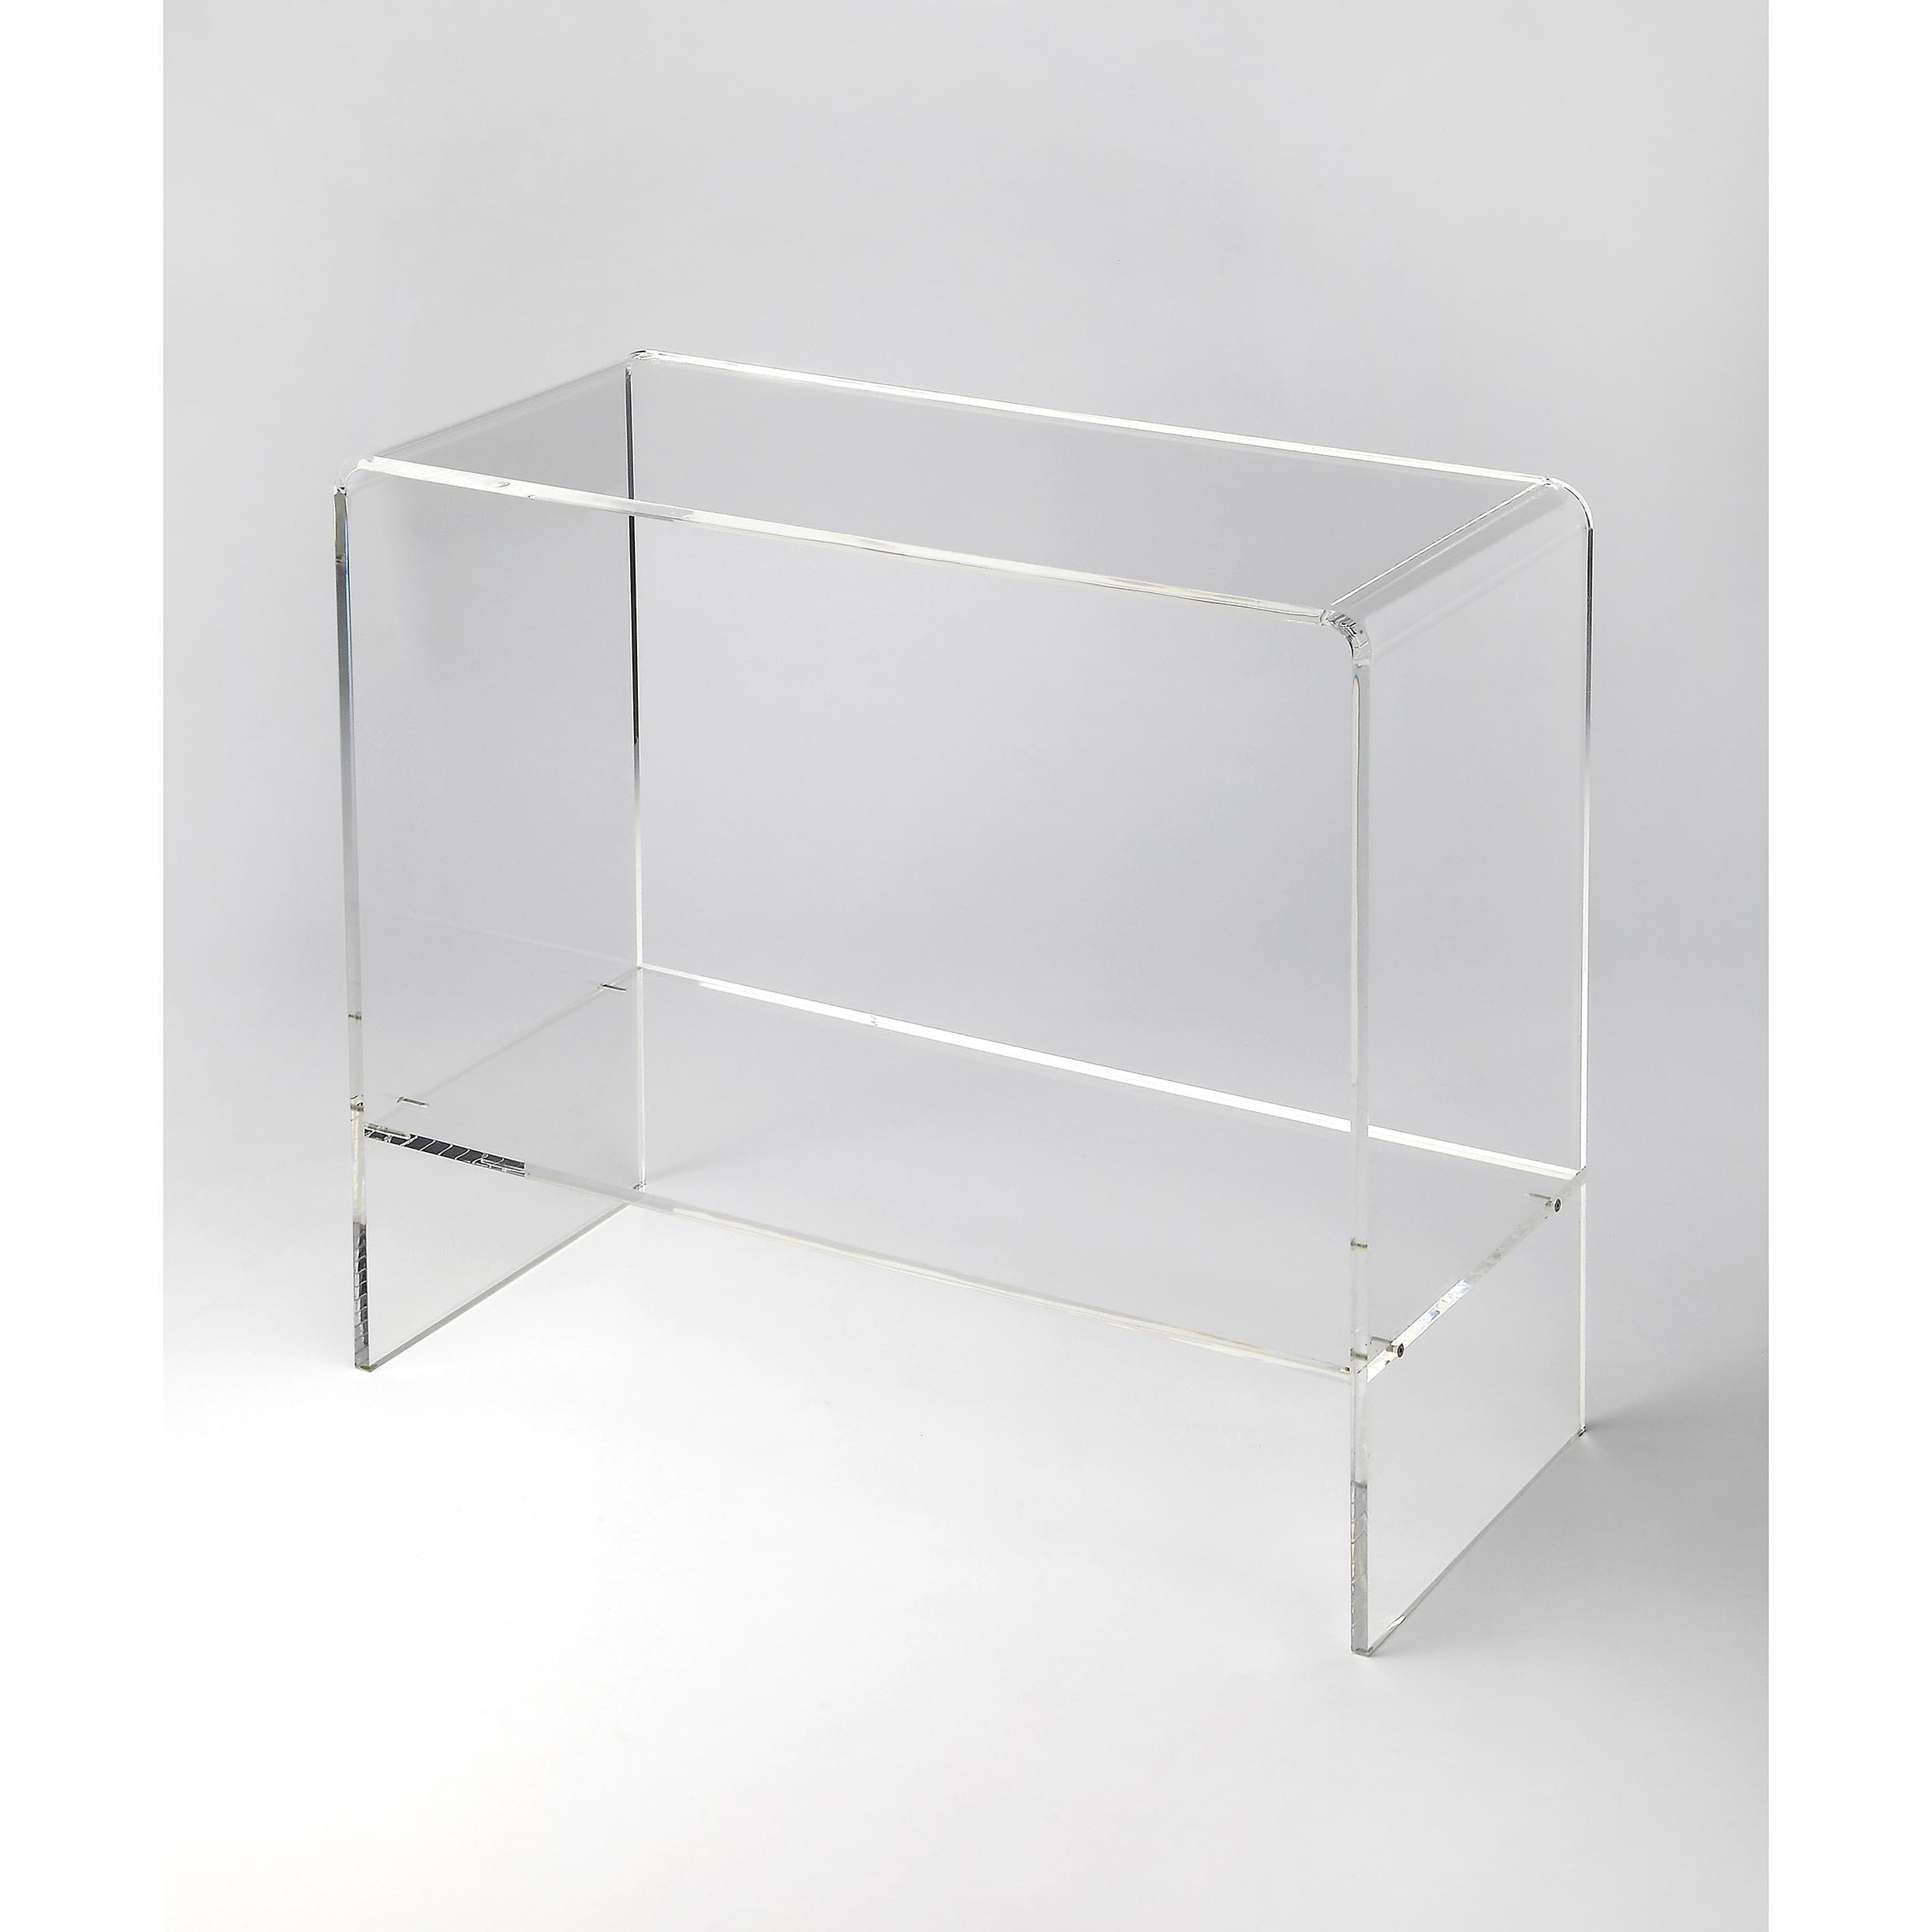 Shop Handmade Butler Crystal Clear Acrylic Console Table Taiwan Free Shipping Today Overstock 12089016